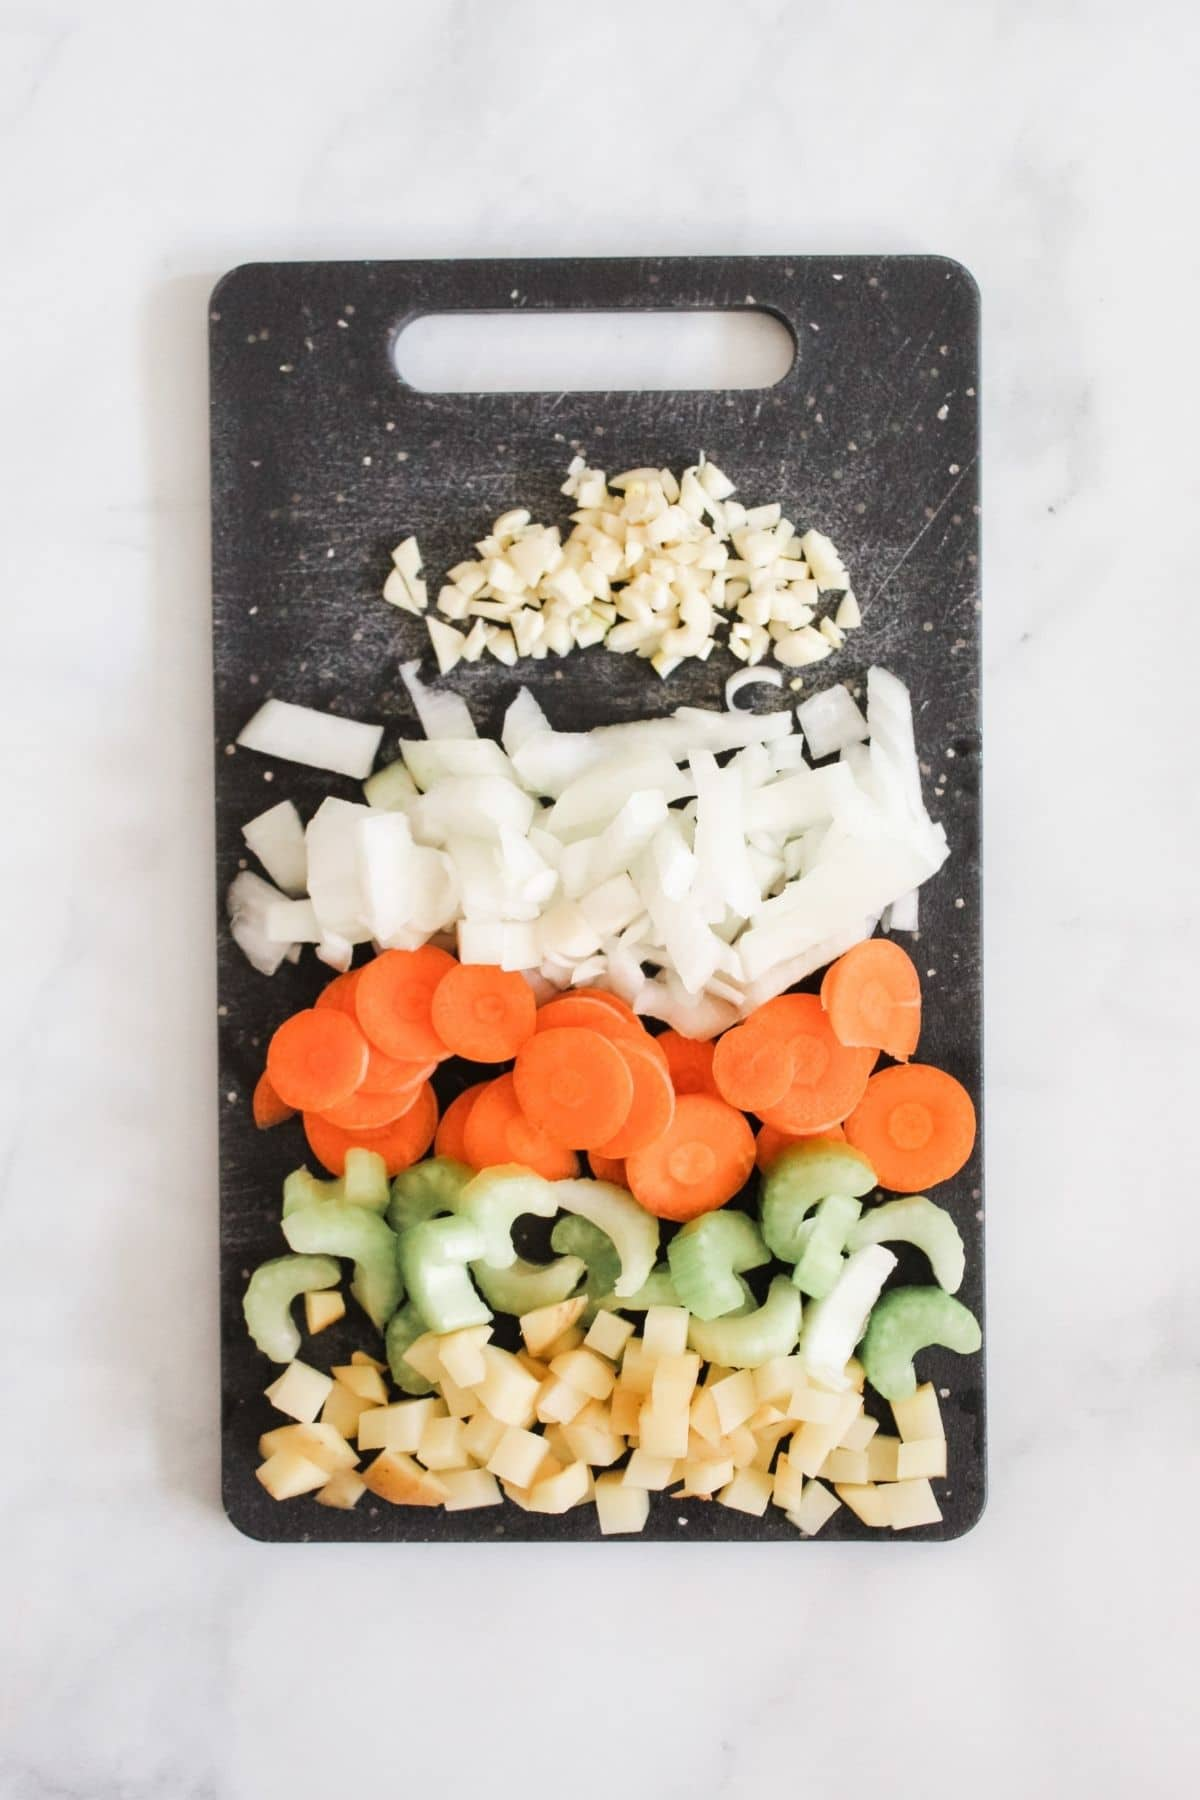 chopped up onions, garlic, carrots, potatoes, and celery on black cutting board